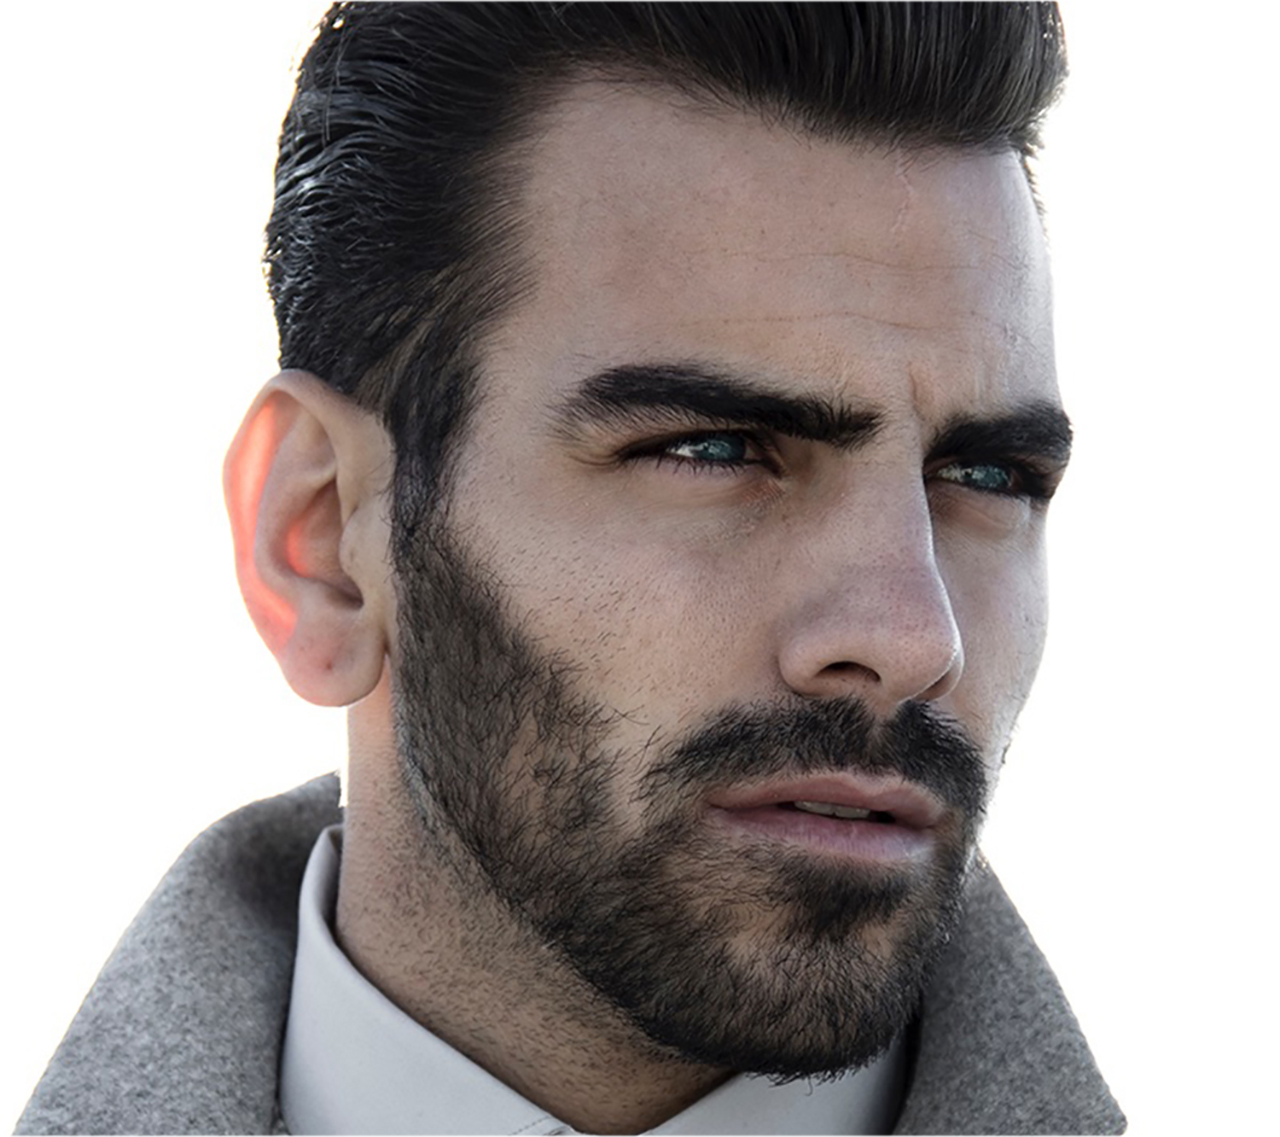 Nyle DiMarco looks away from the camera